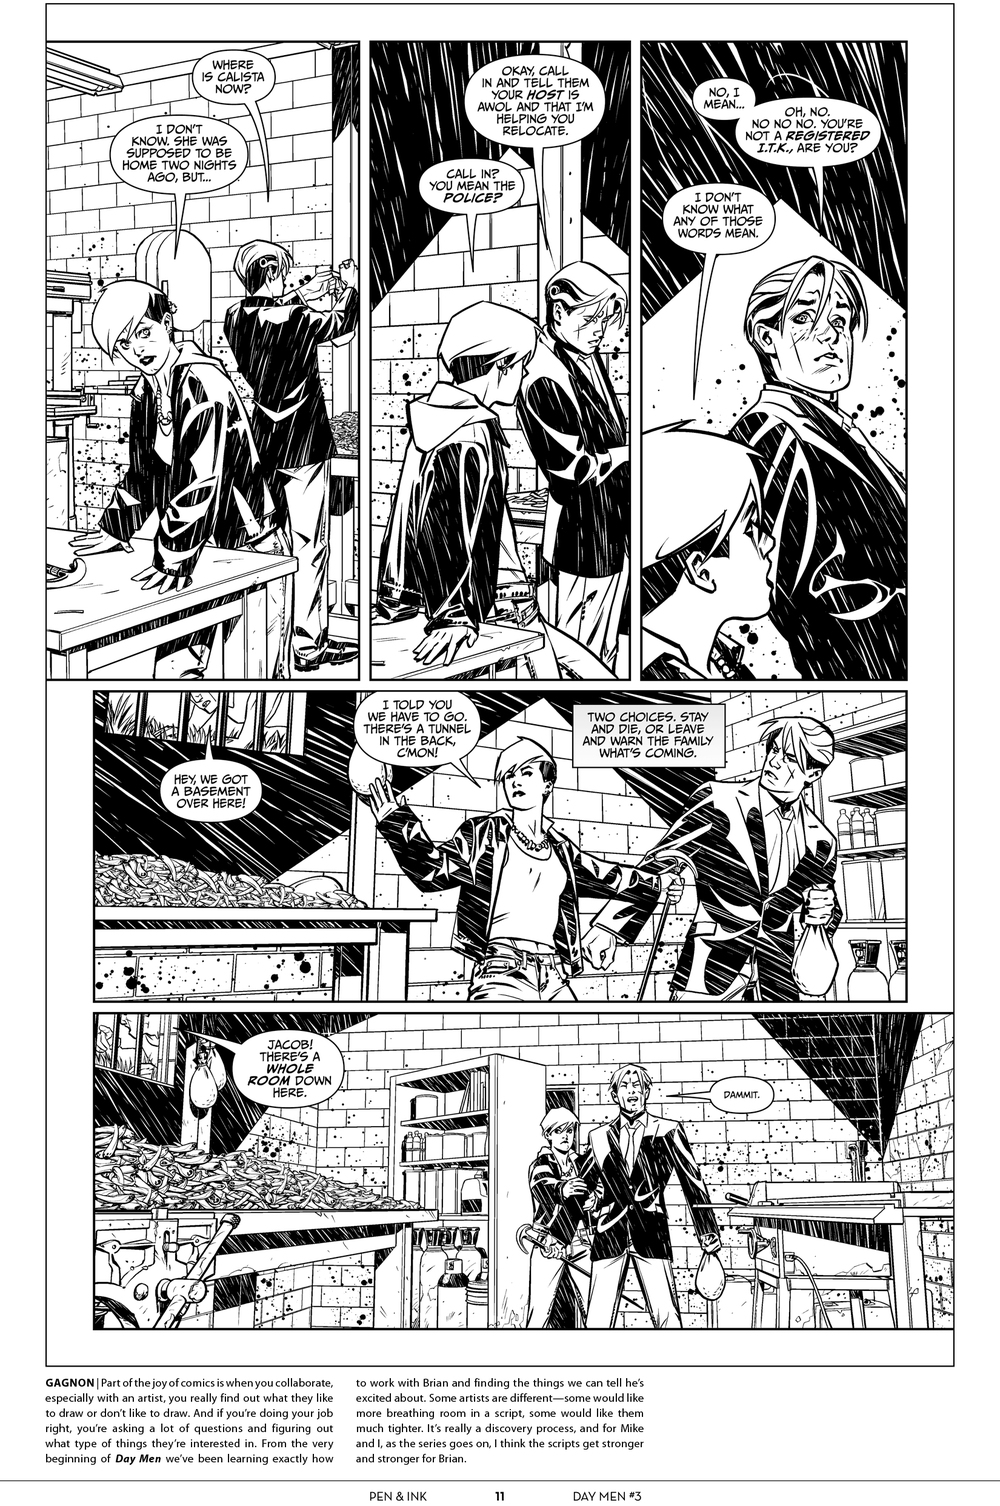 BOOM_Pen_and_Ink_Day_Men_002_PRESS-11.jpg